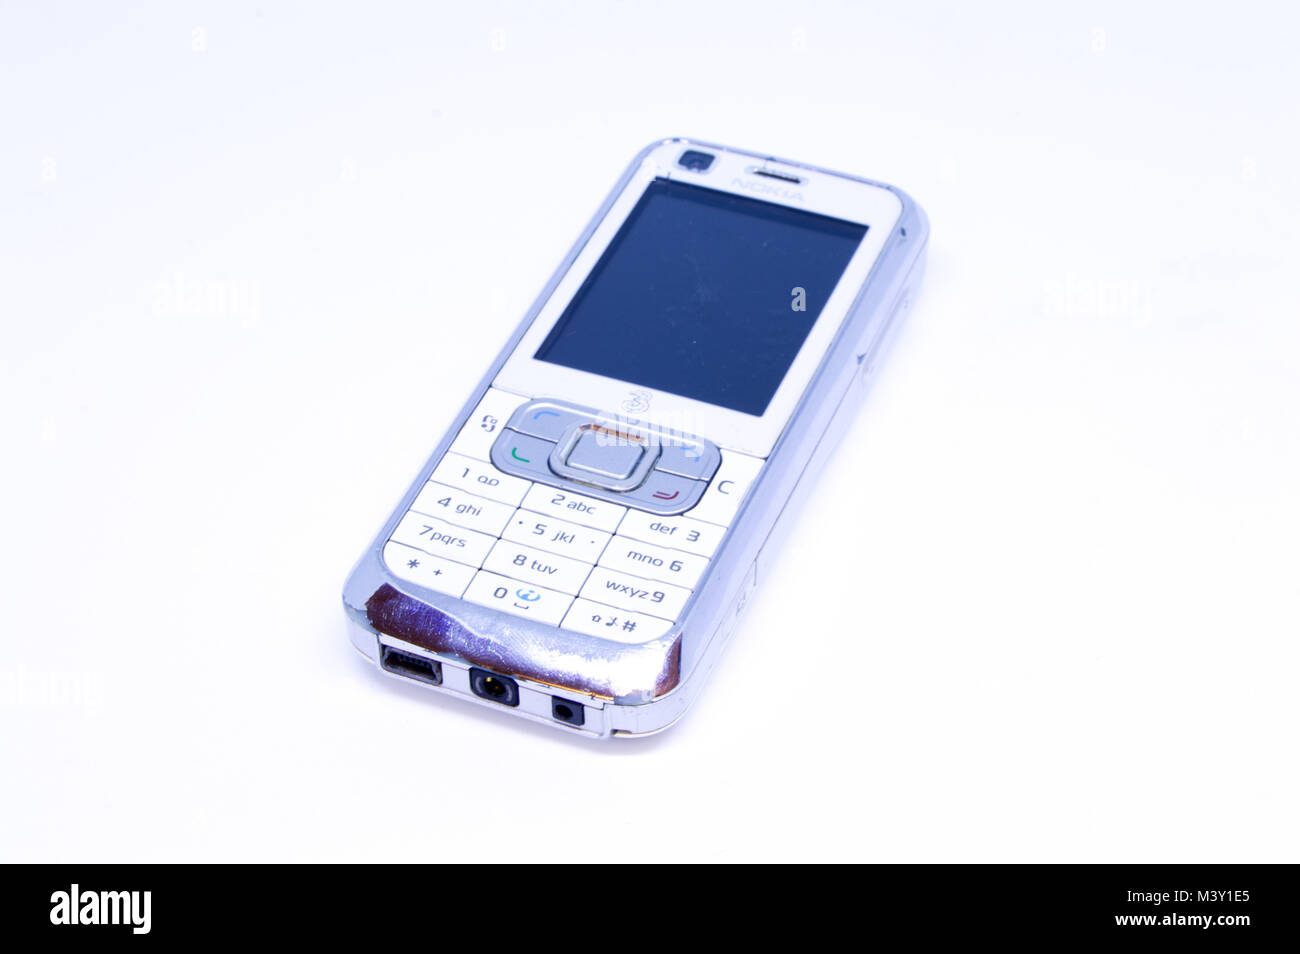 Old Nokia 6120 Mobile Phone Released In 2007 Photographed Against A Stock Photo Alamy